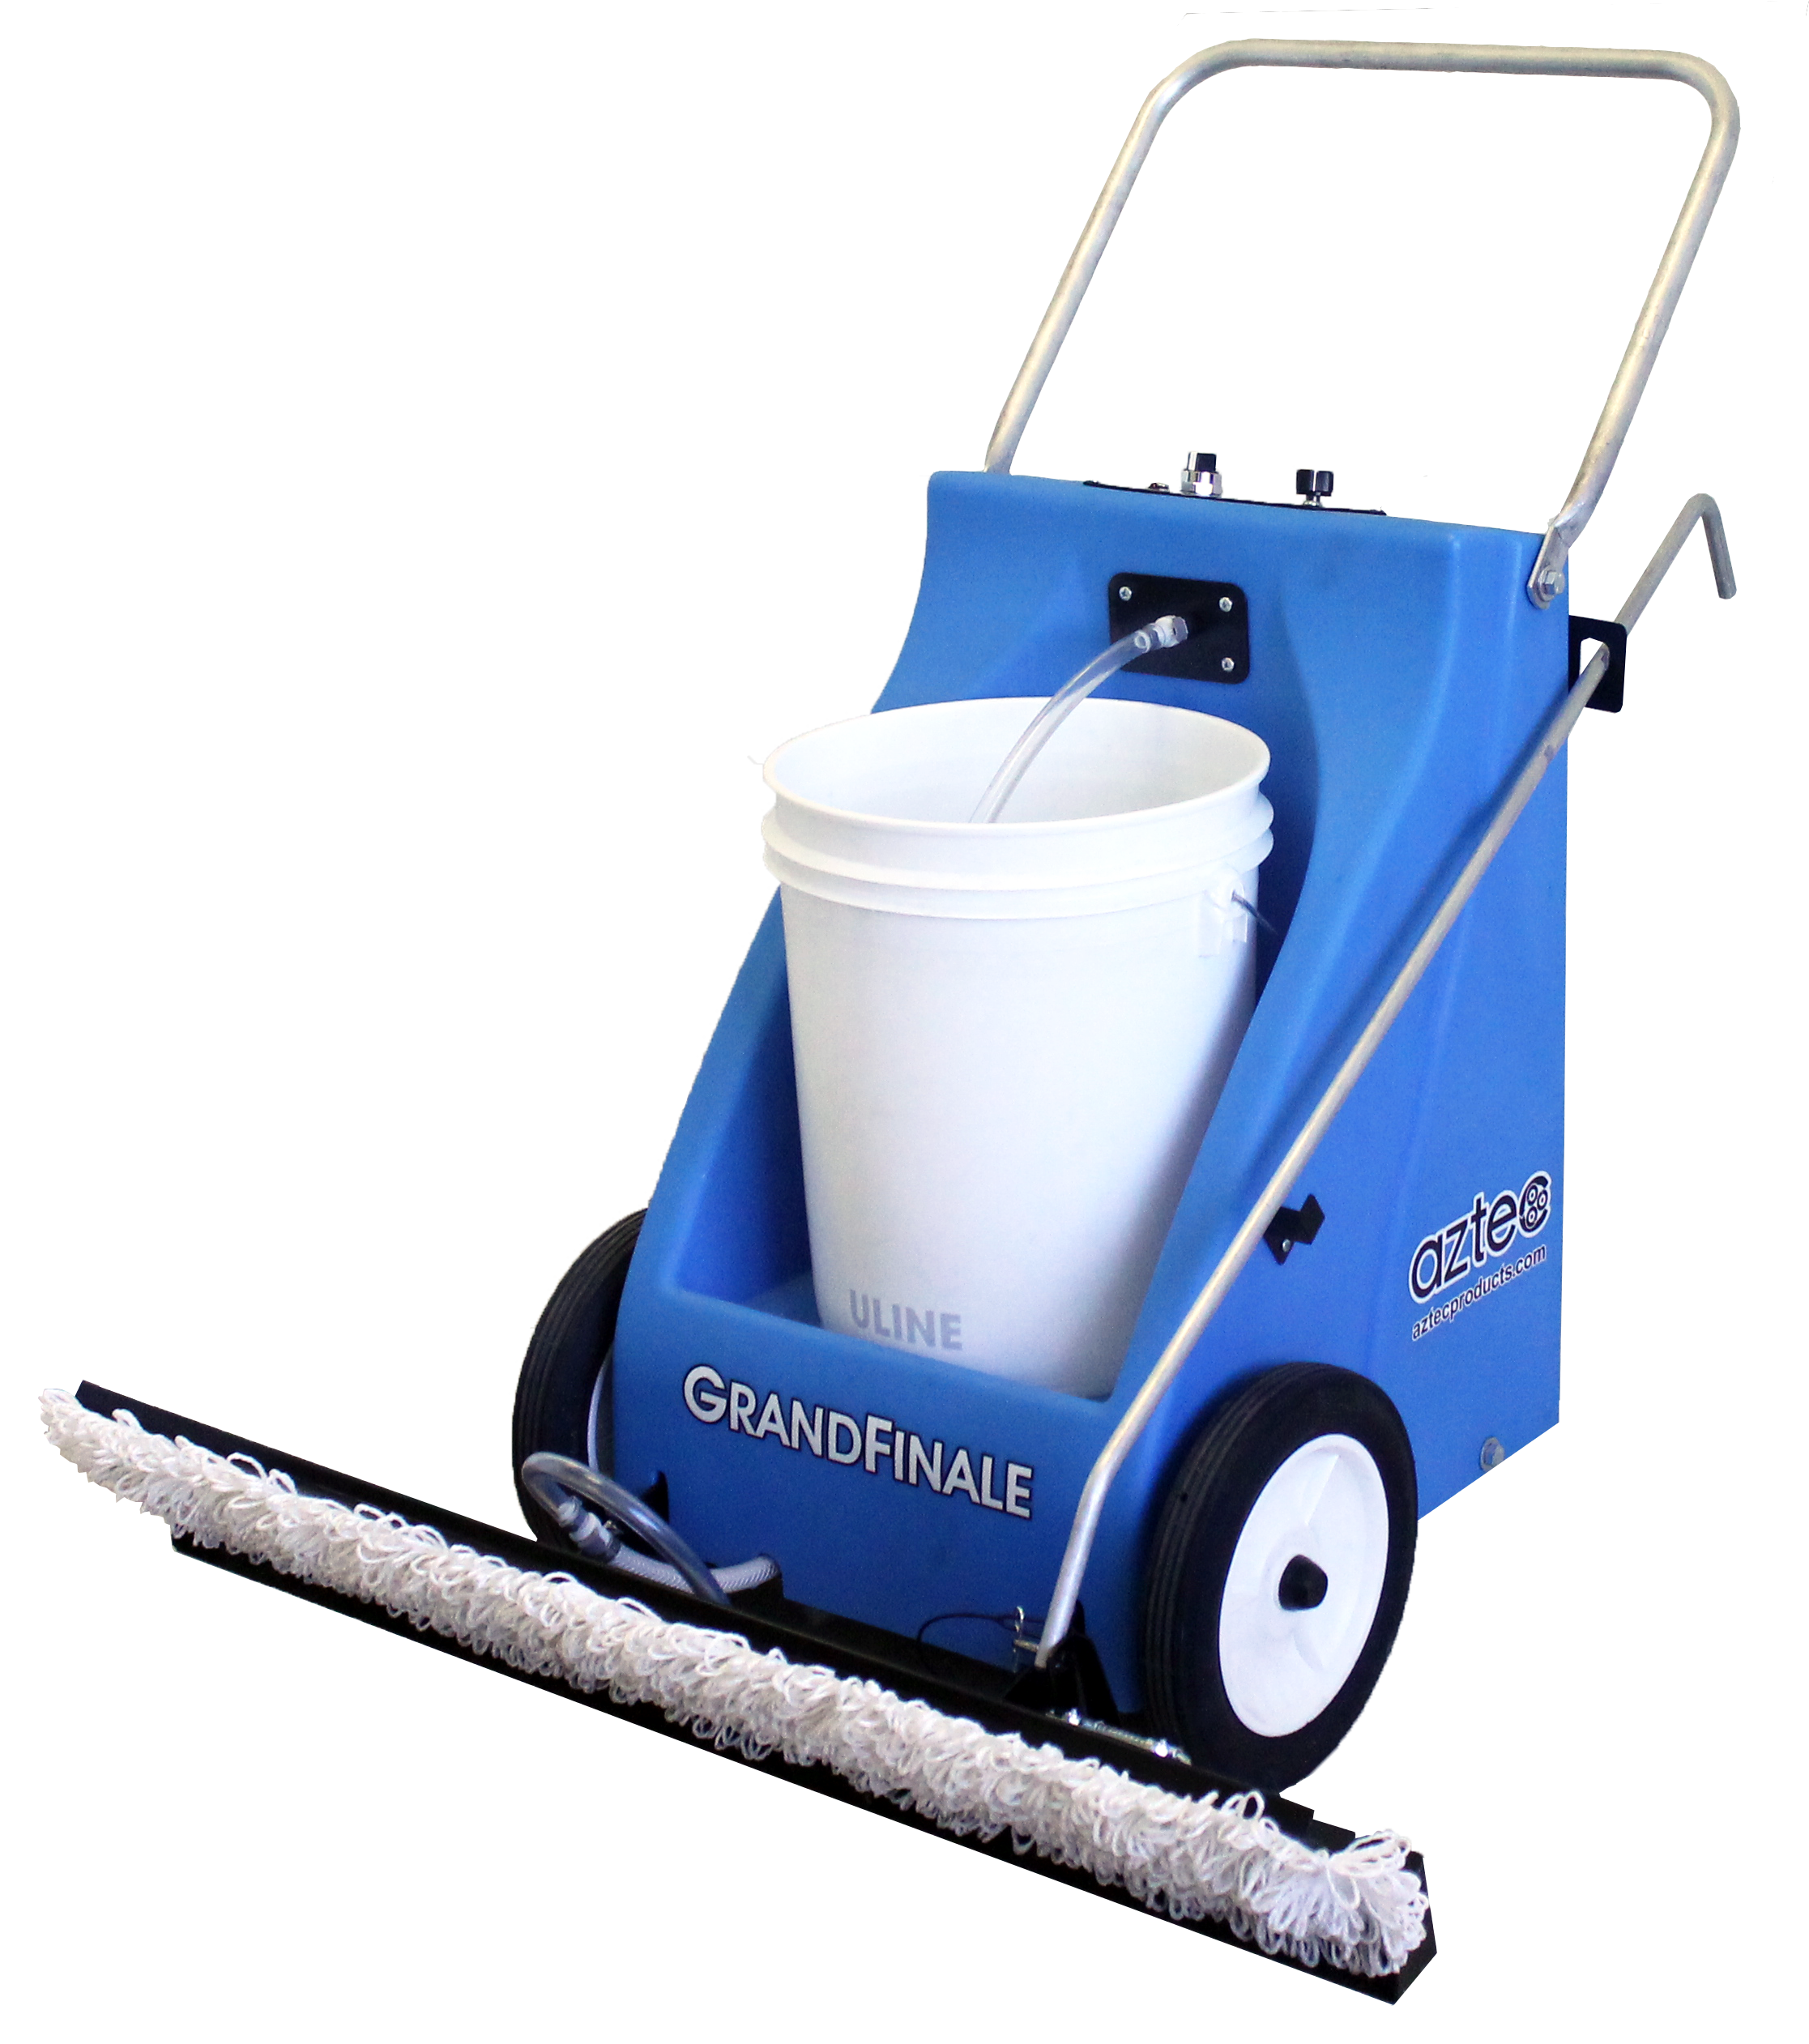 Floor waxing machine png. Aztec products finish applicator